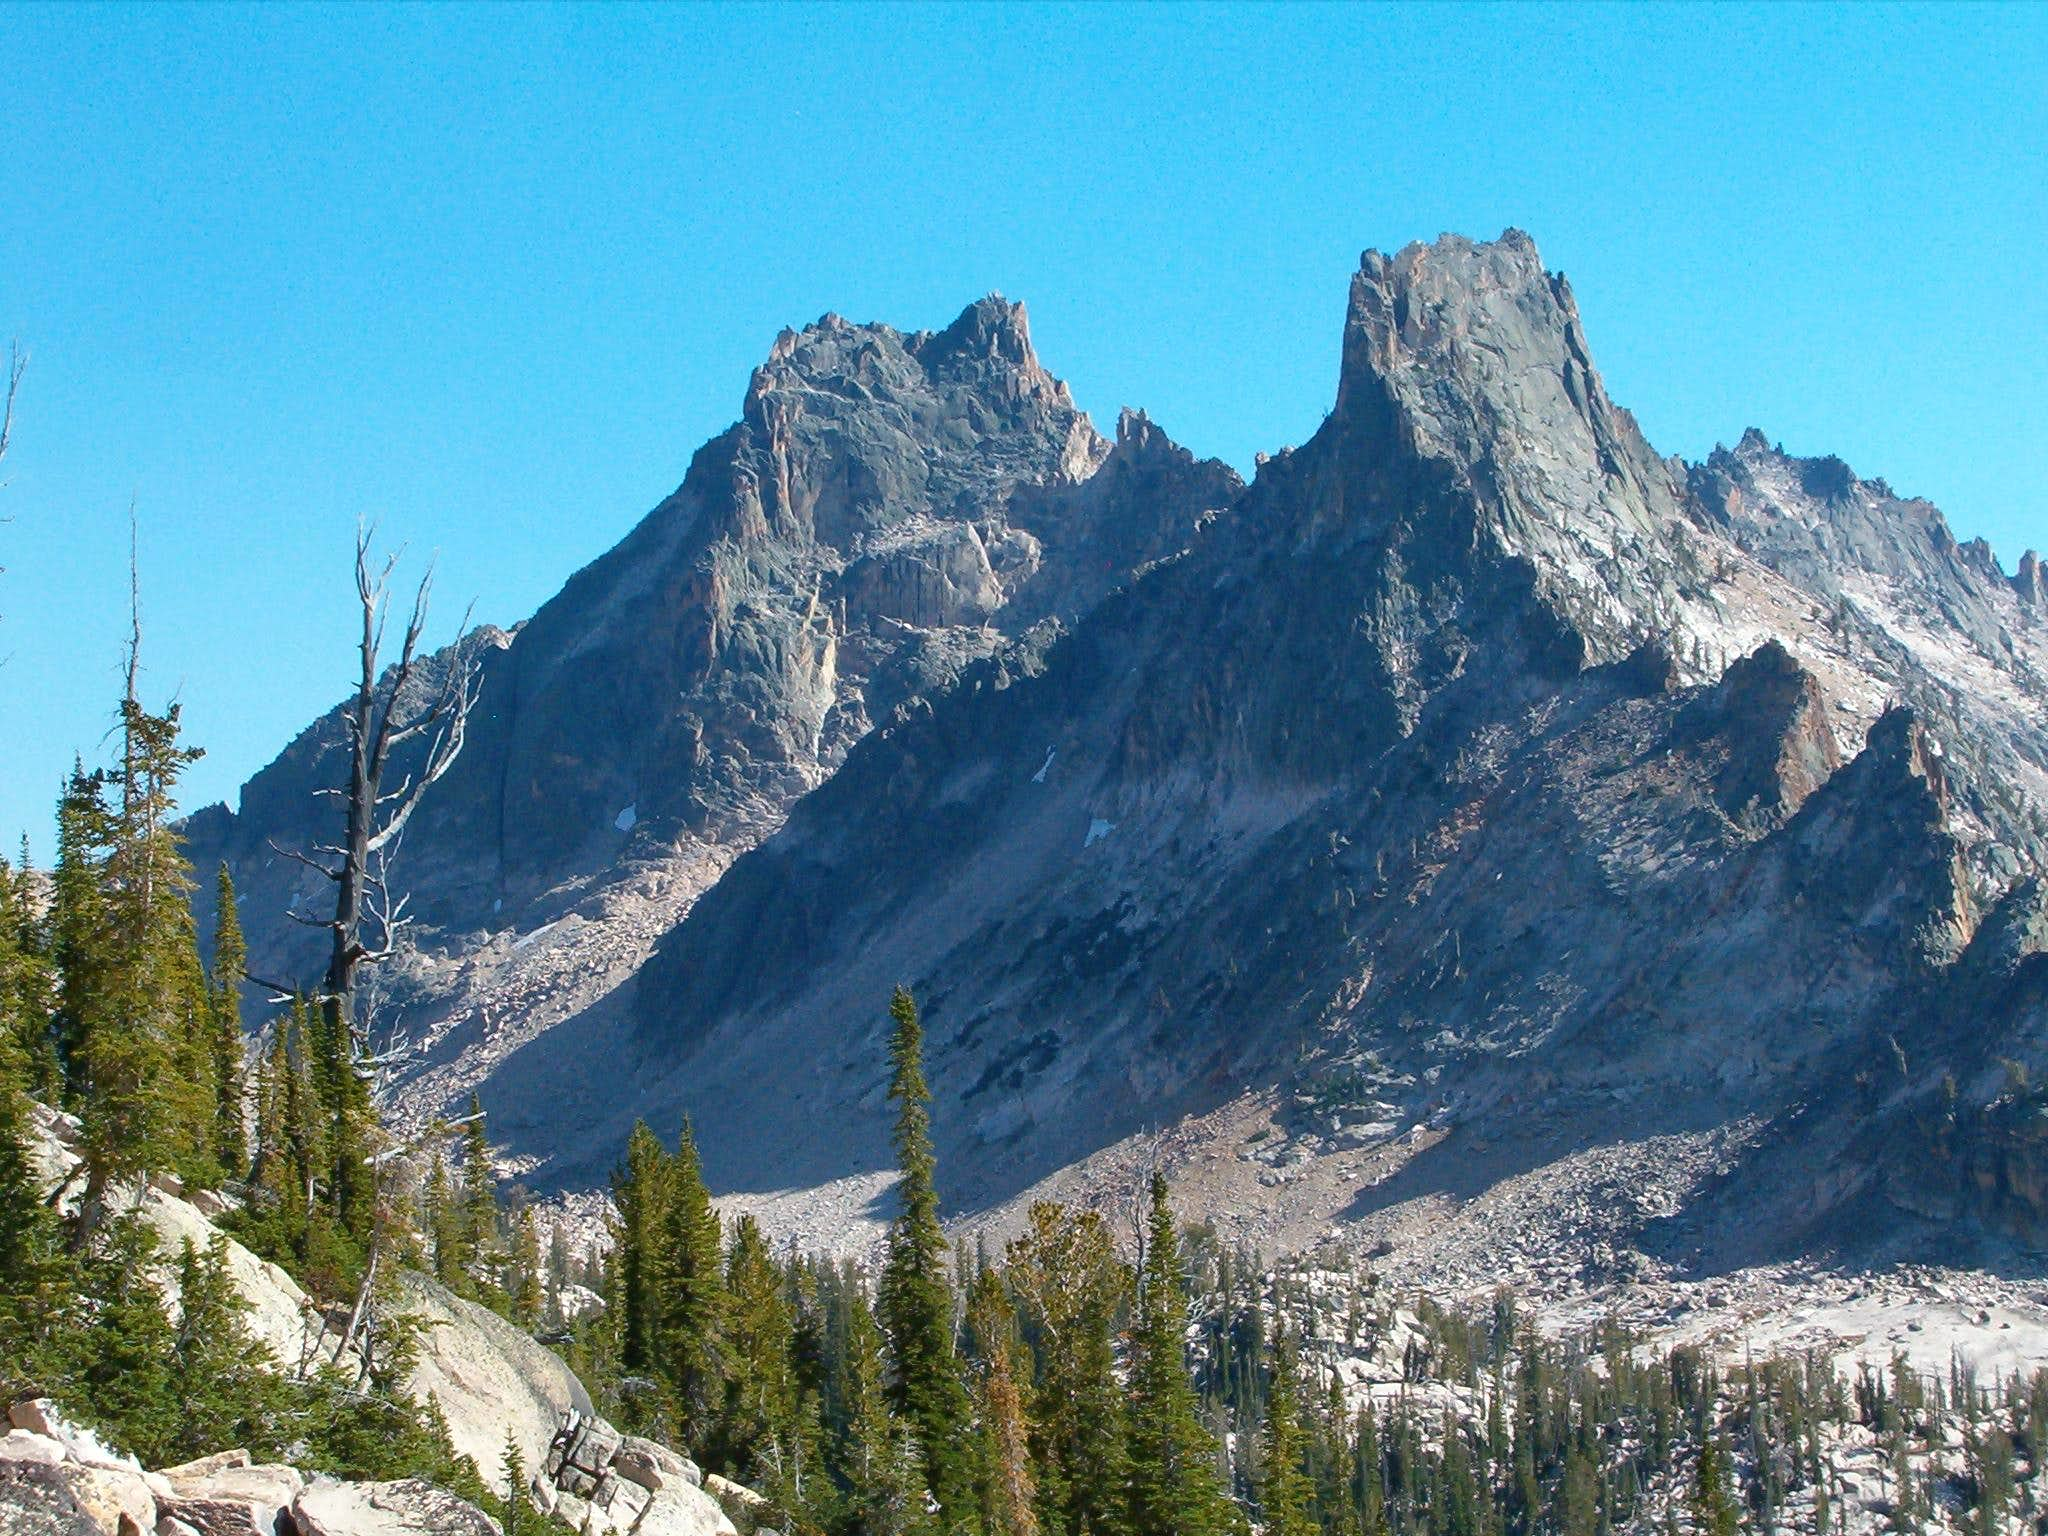 Packrat Peak